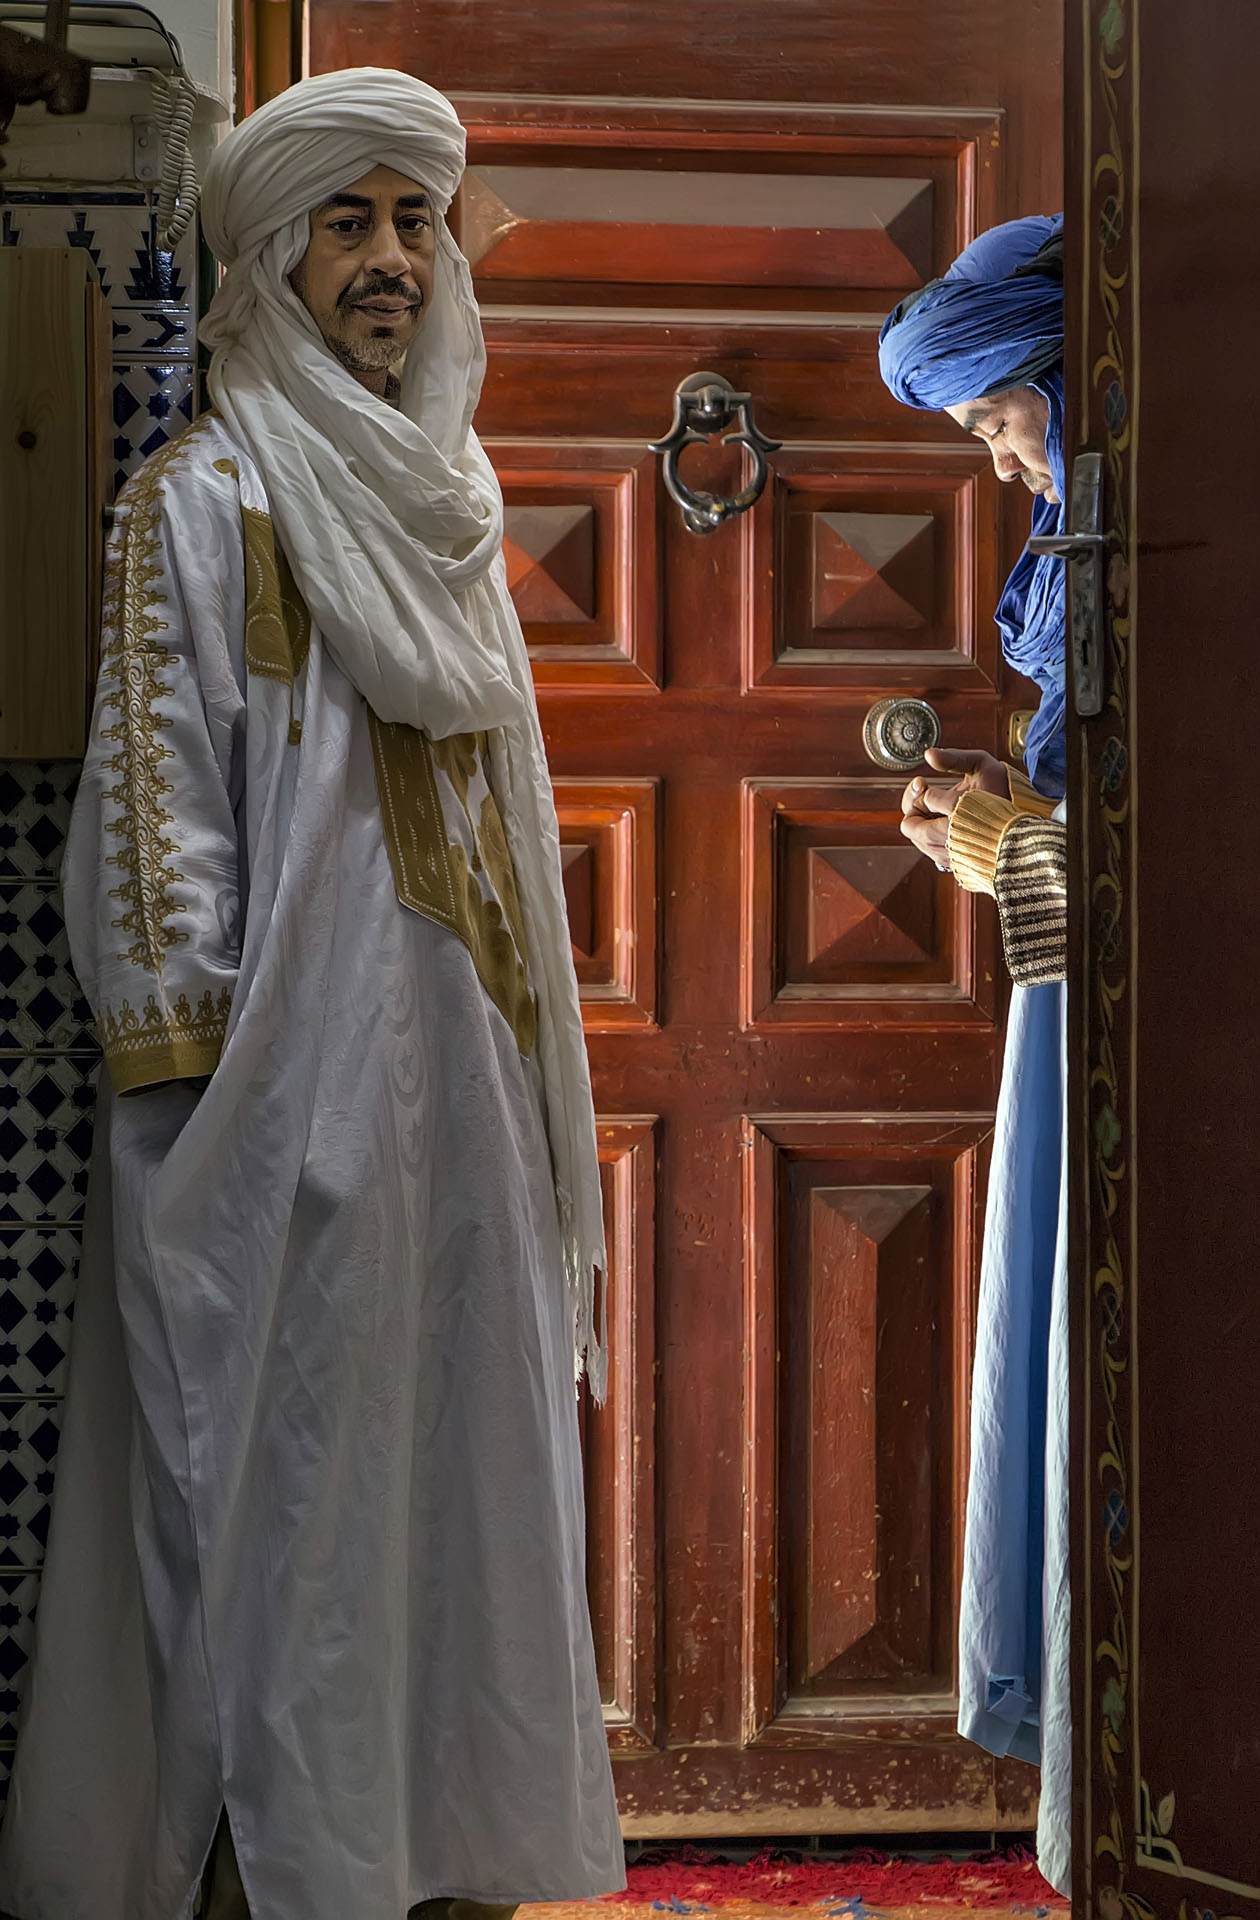 """Tinghir, Morocco   Gary Anthes  Photograph  10.5"""" x 16"""" or 18"""" x 24"""" framed  $325   Click here to Inquire"""